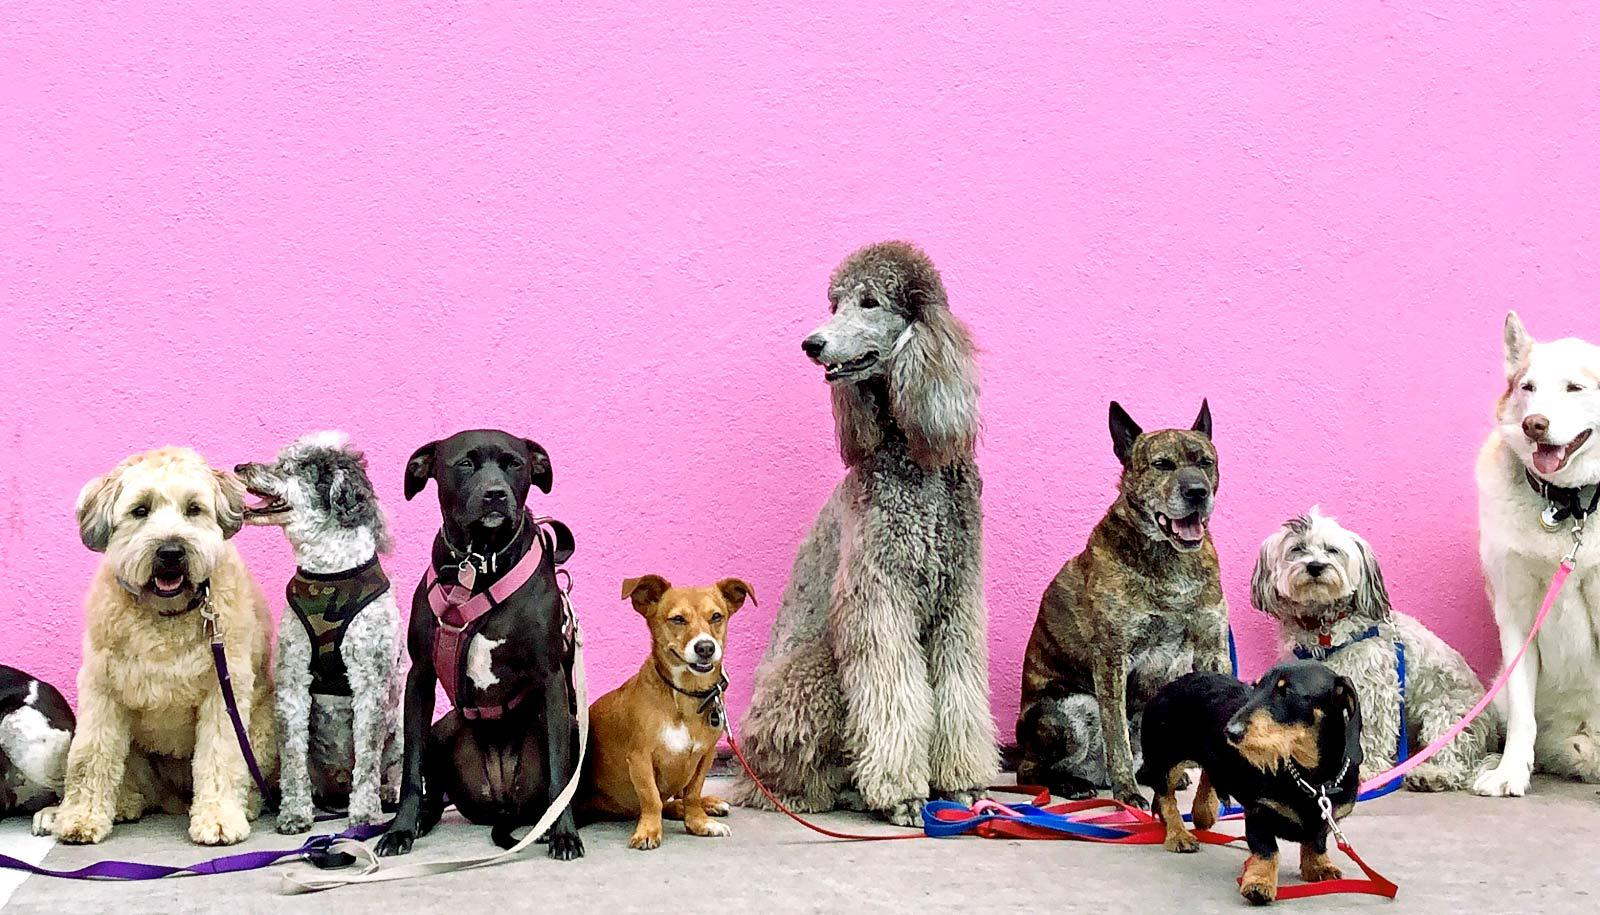 bigger dogs and smaller dogs against pink wall